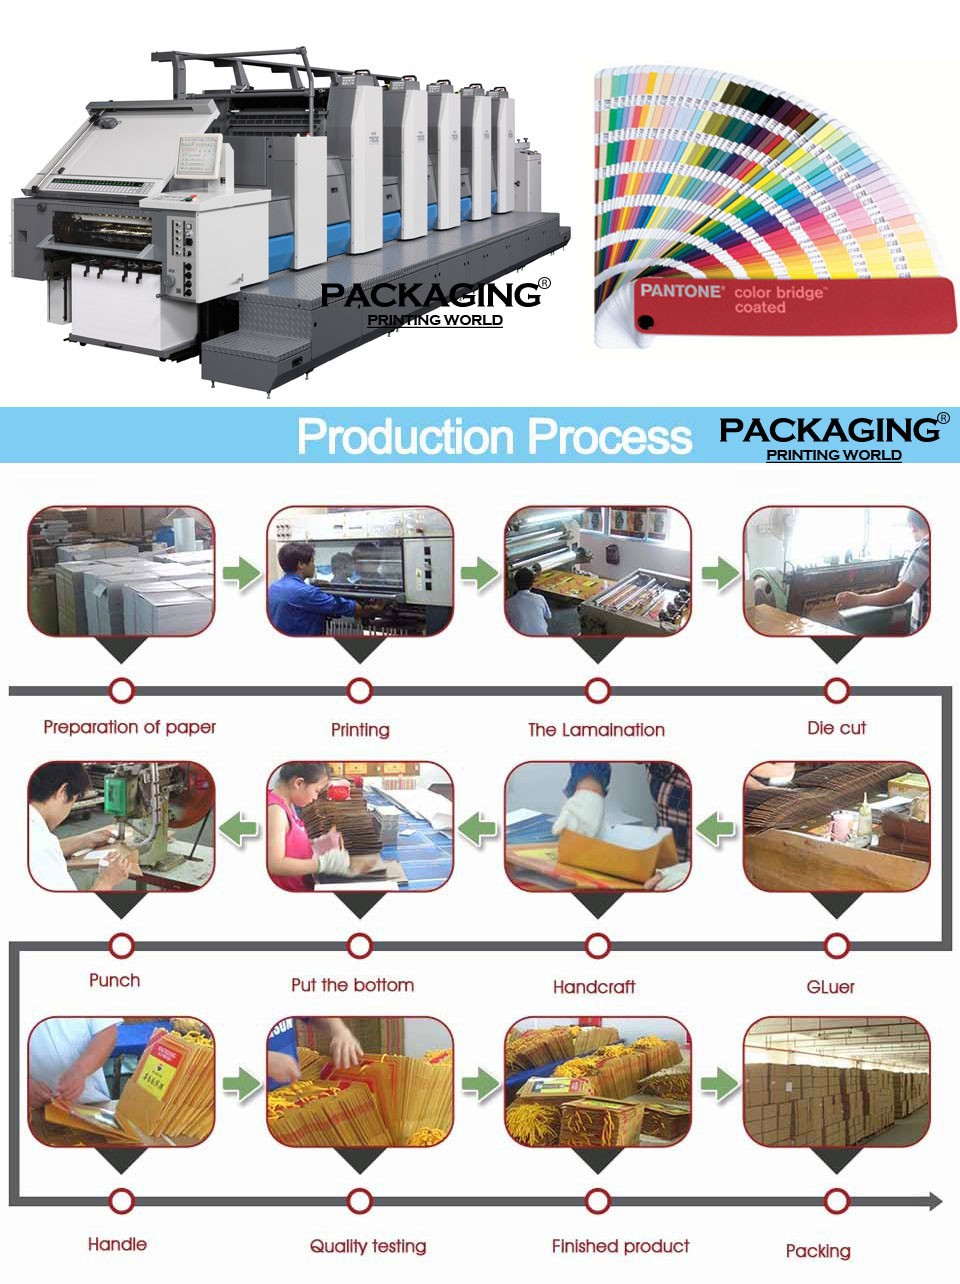 8paper packaging gift box production process